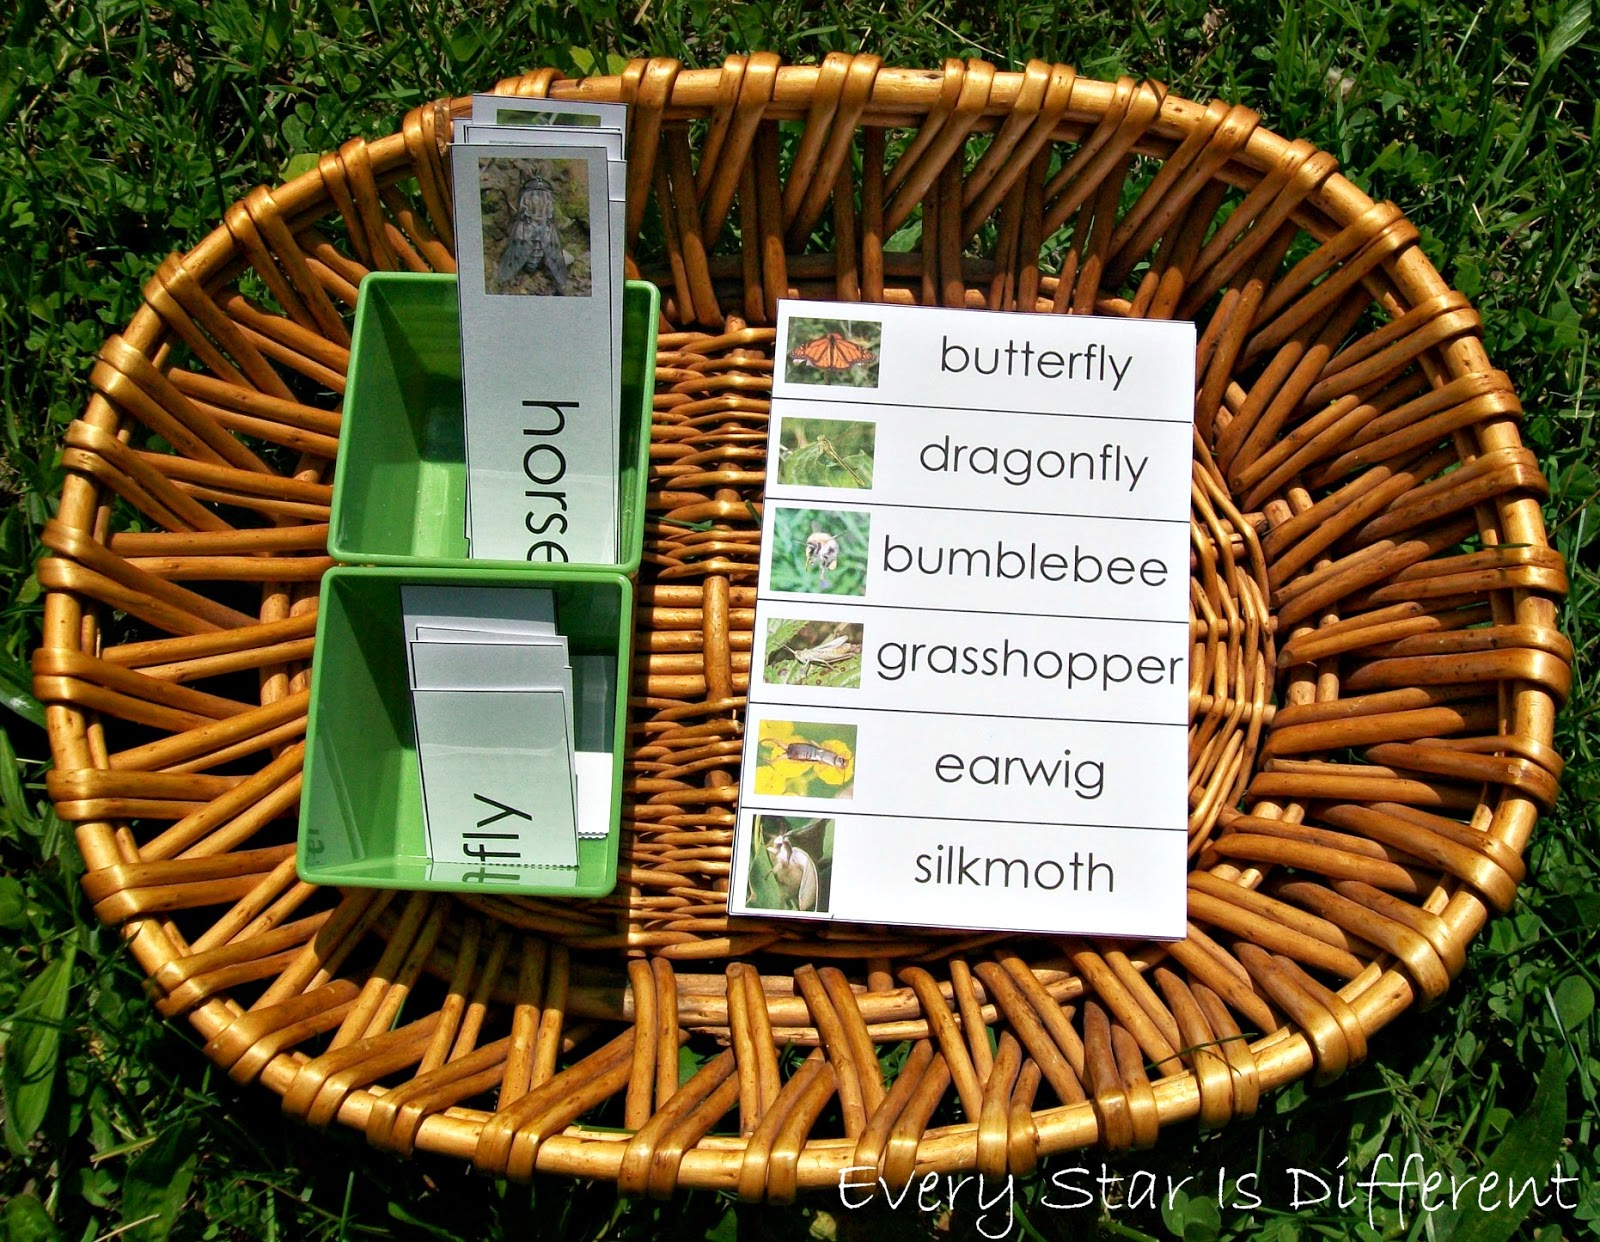 Insect themed compoun word activity for kids (free printable)